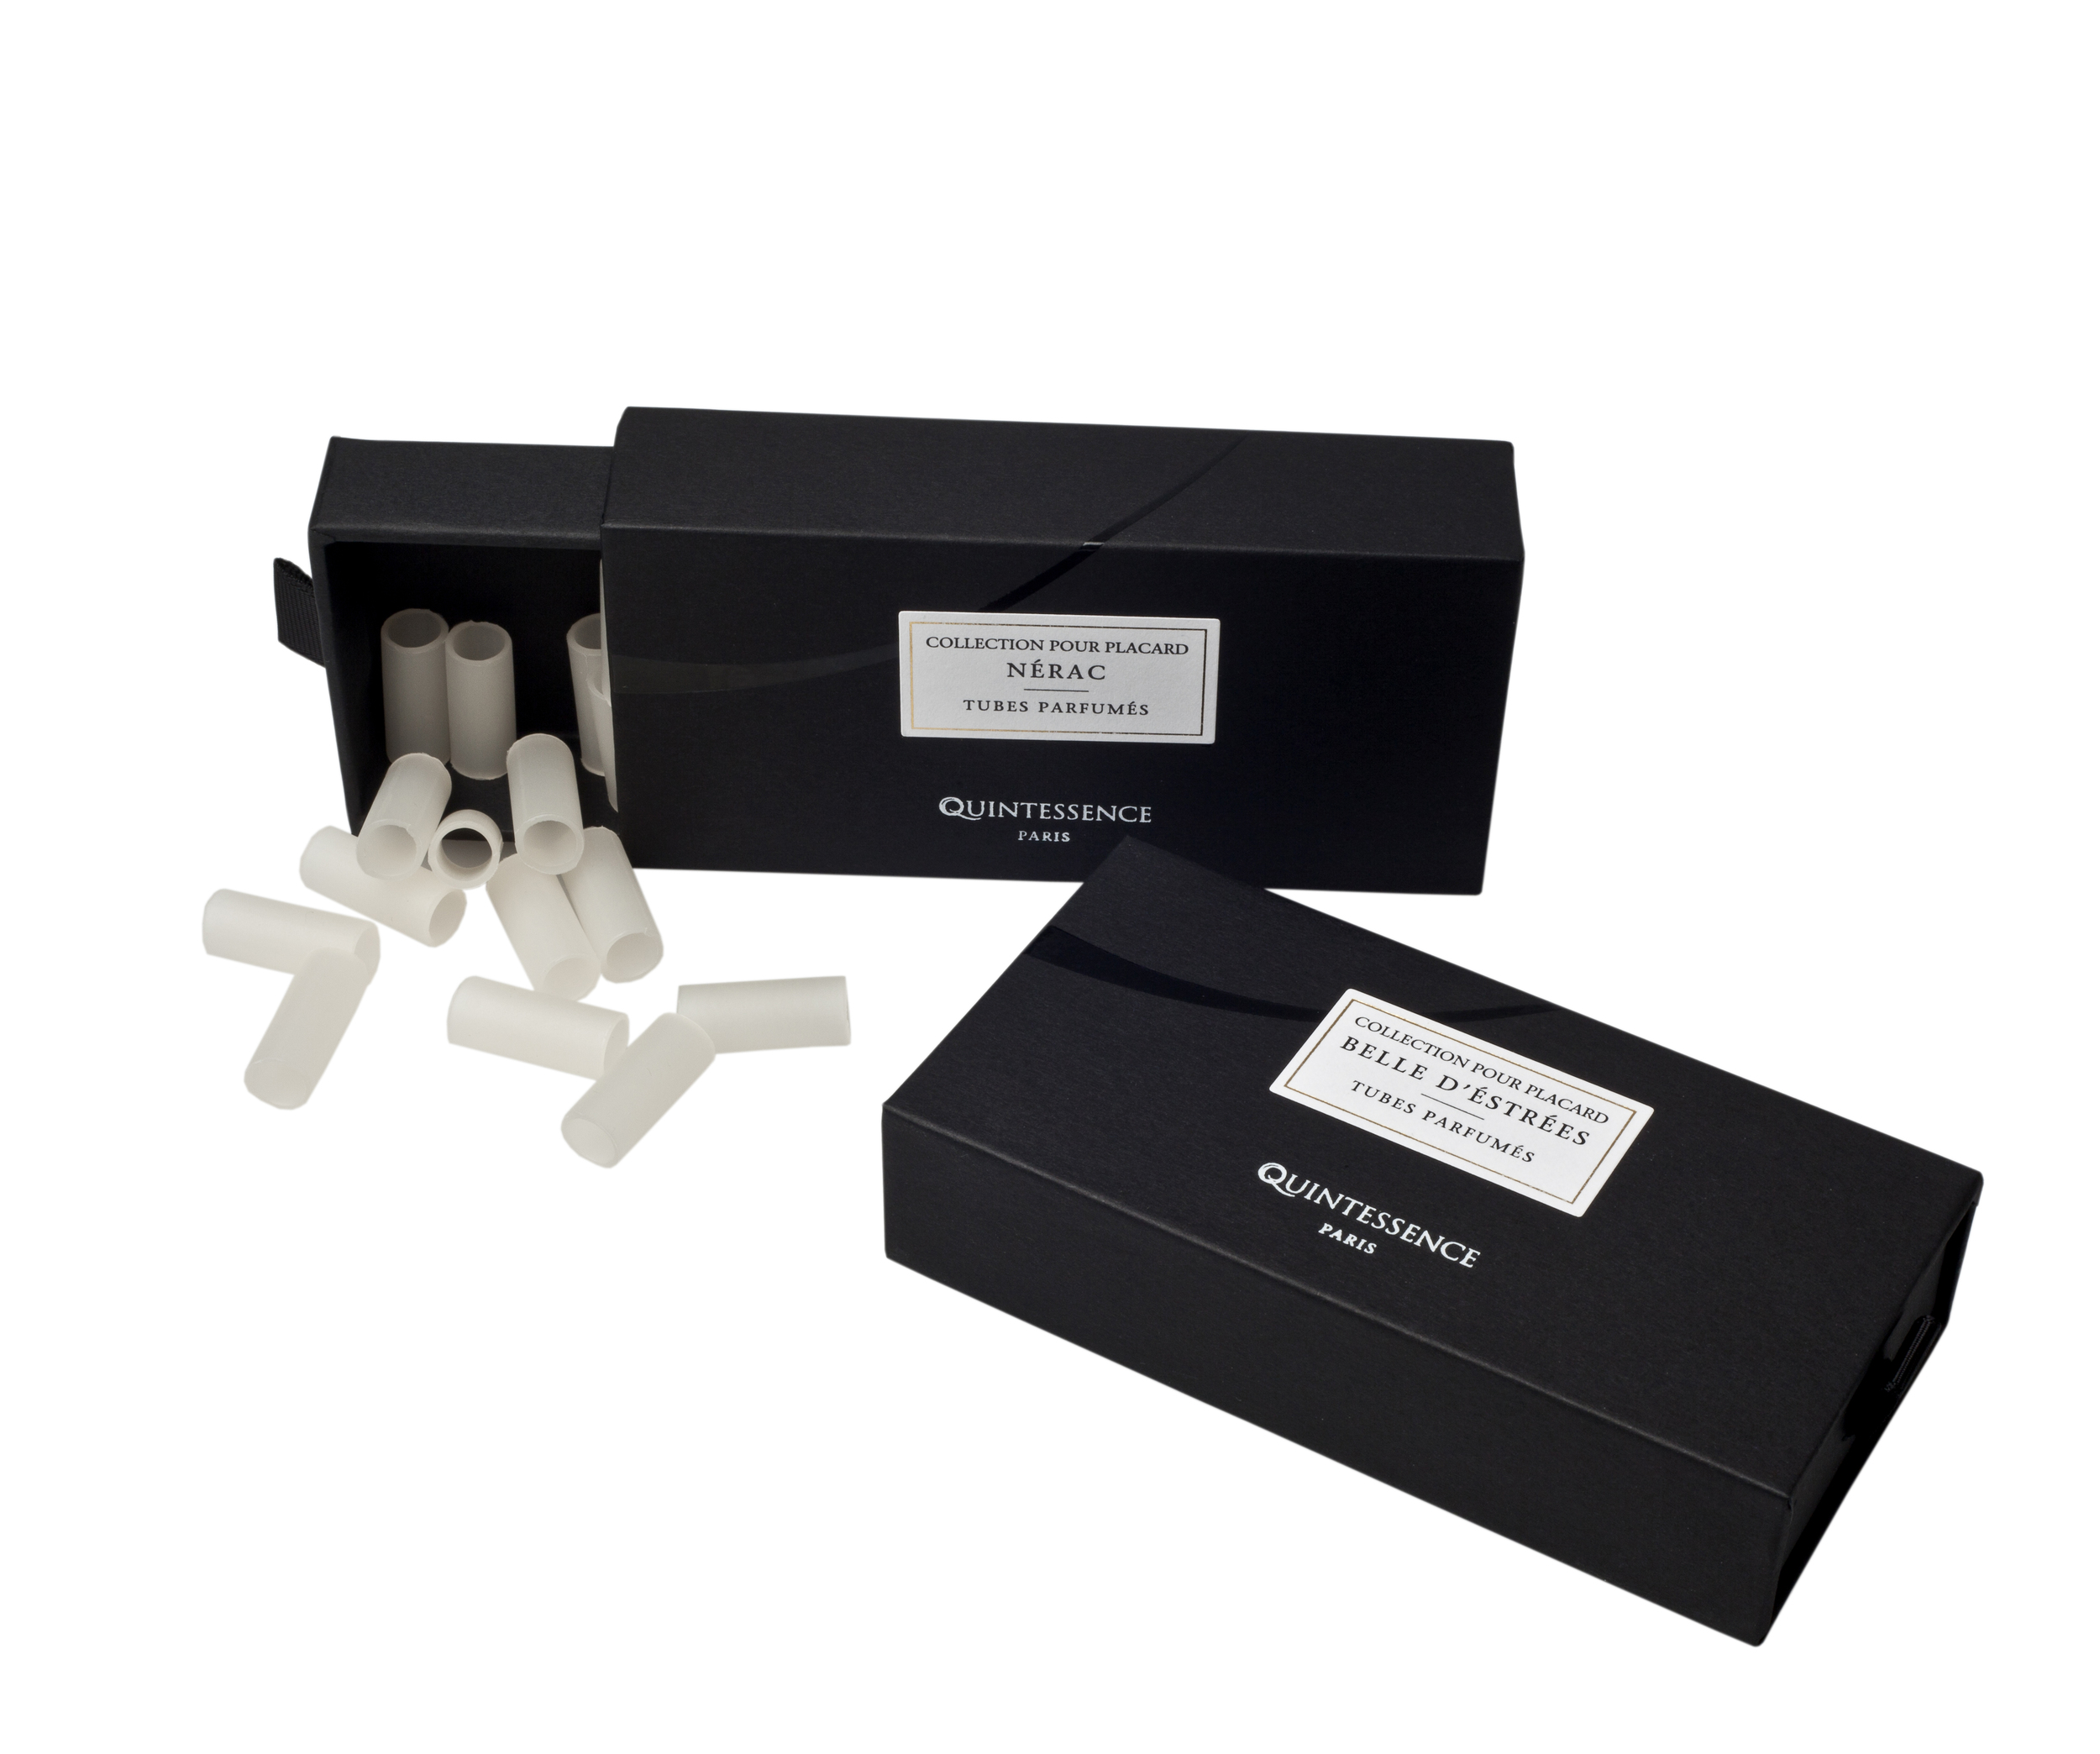 Quintessence-Paris Hanger Tubes. Available in 2 discreet scents. $125